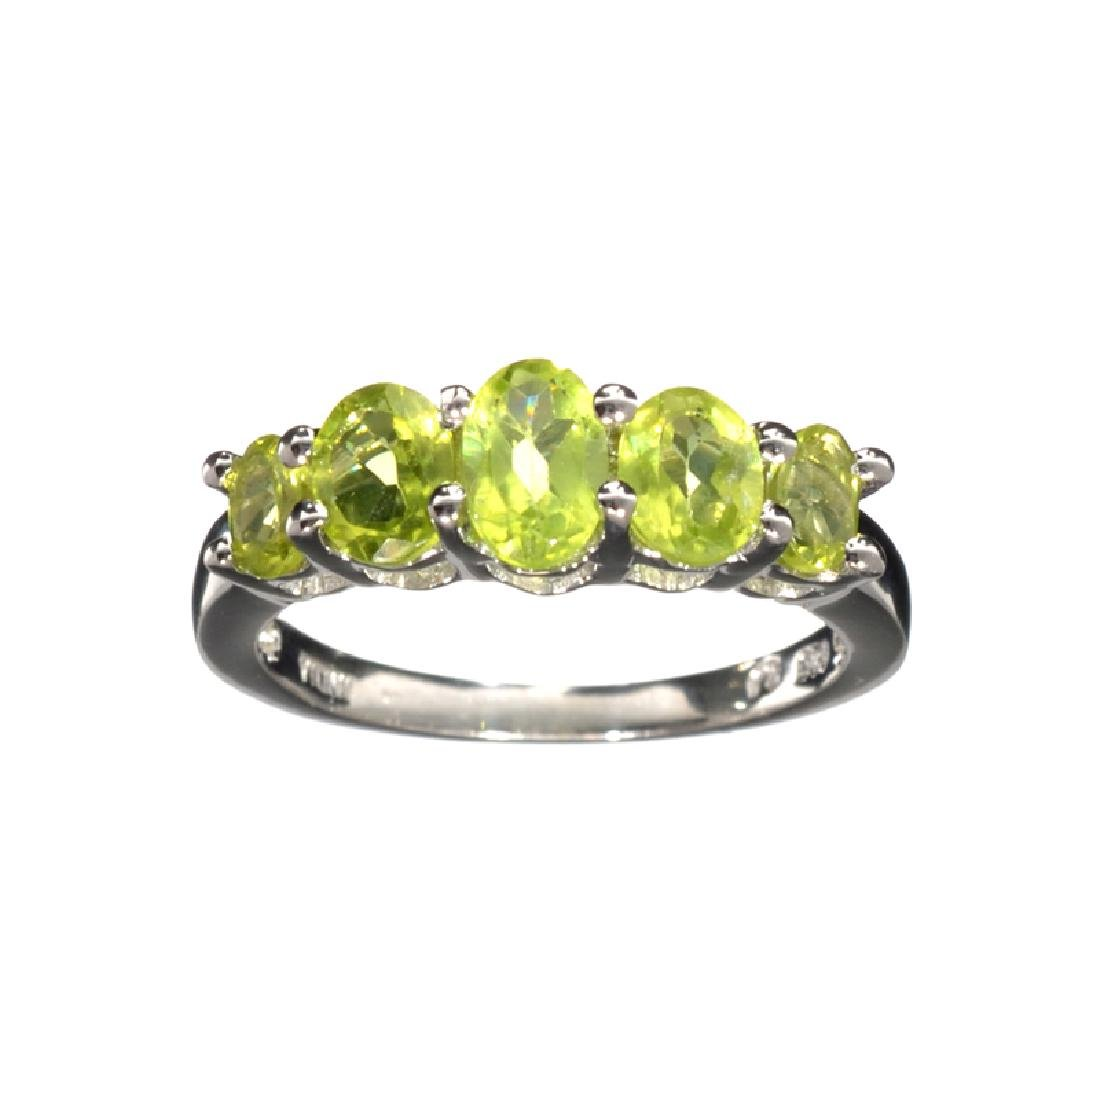 APP: 0.3k Fine Jewelry 1.49CT Oval Cut Green Peridot